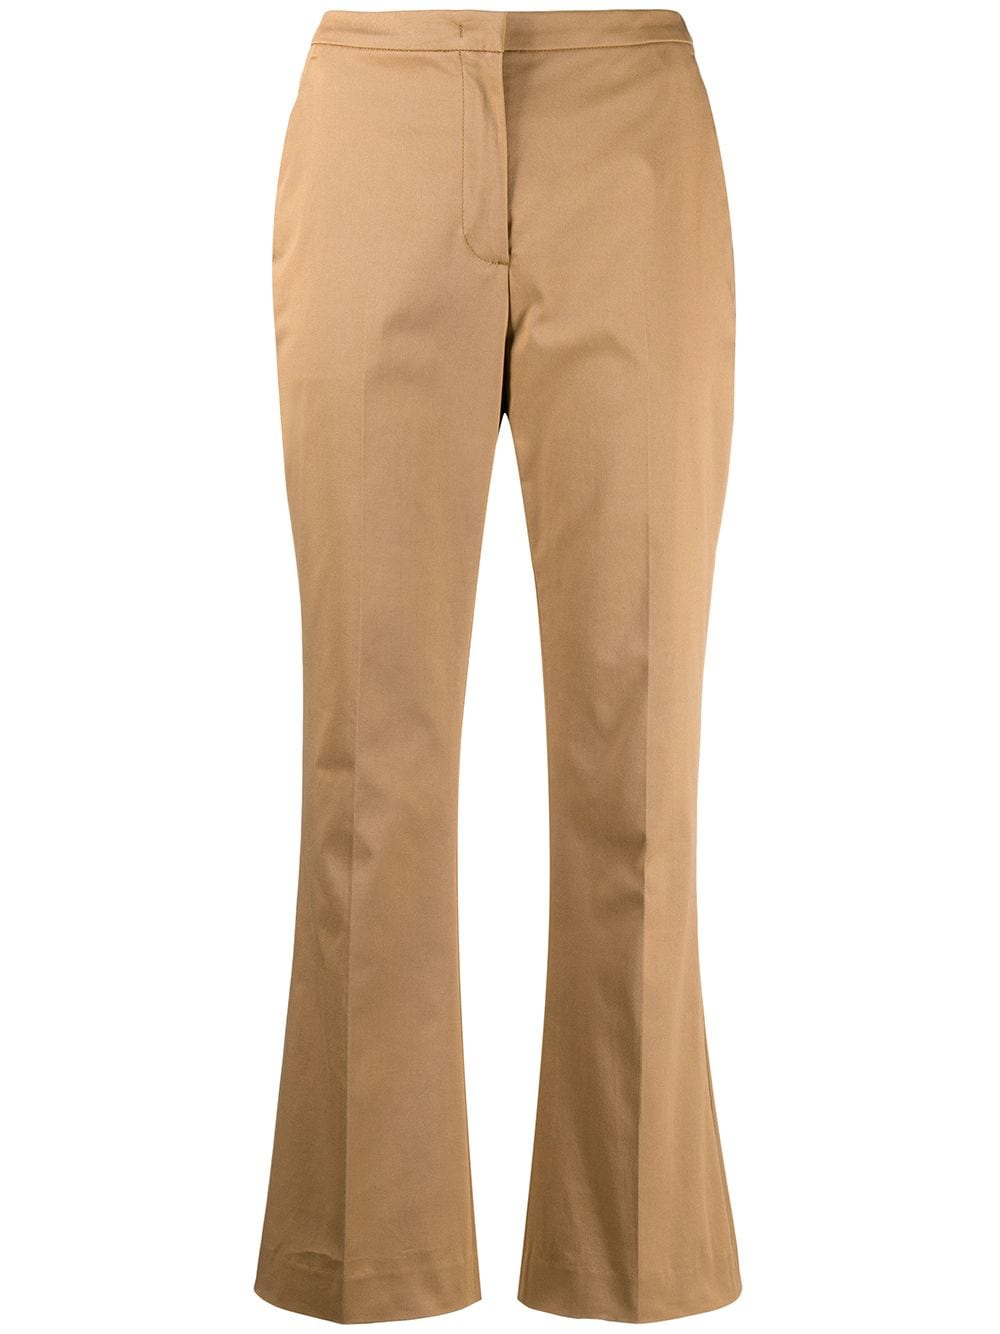 Camel stretch-cotton cropped kick-flare trousers  ASPESI |  | WP01-G41701372